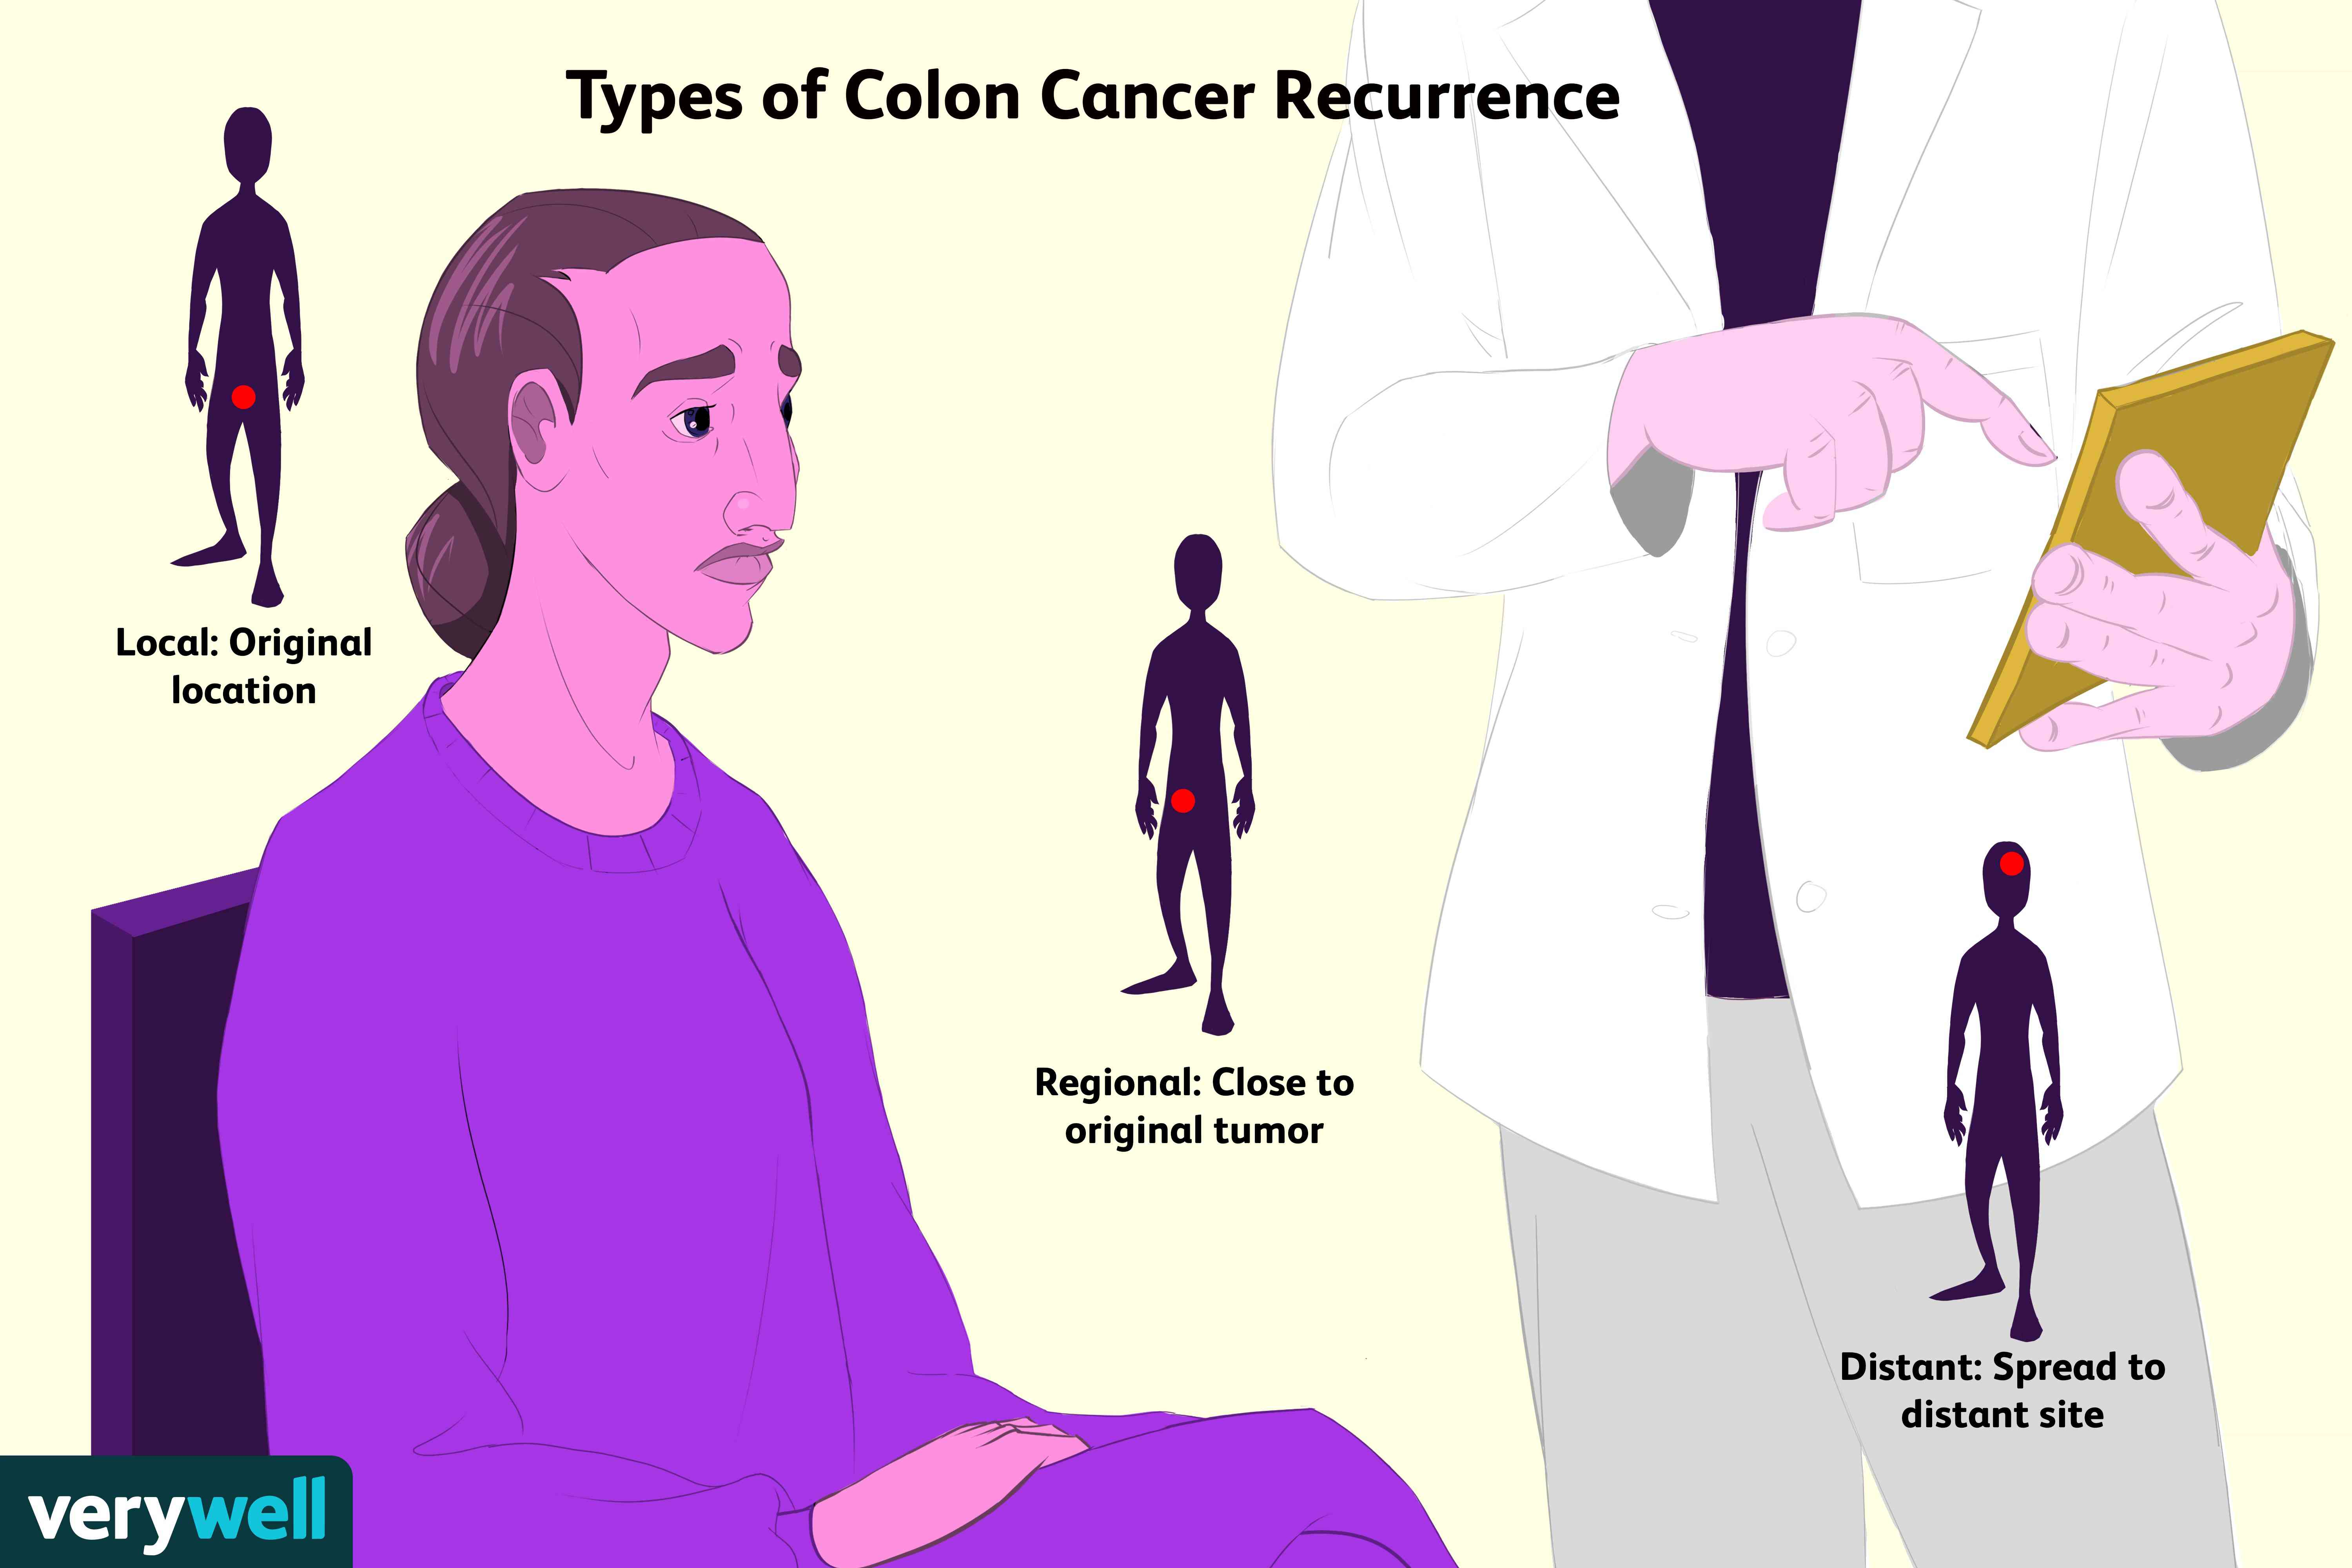 Rectal cancer recurrence